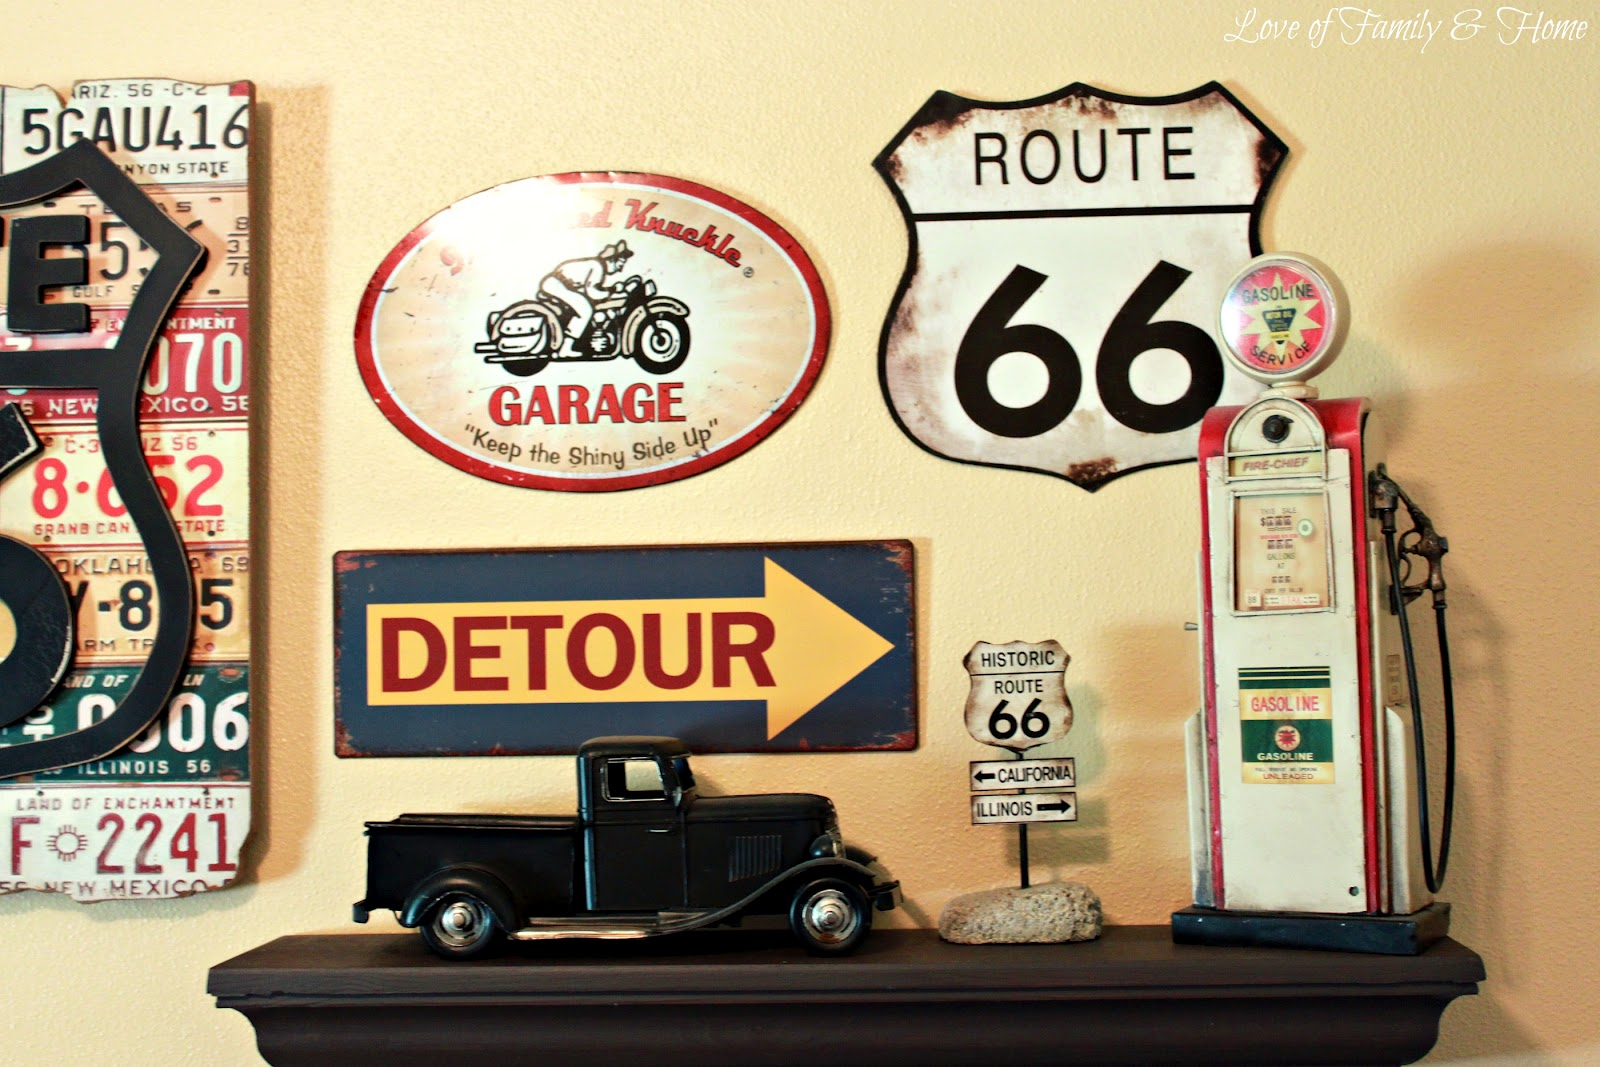 Route 66 Nursery Amp Gallery Wall Love Of Family Amp Home